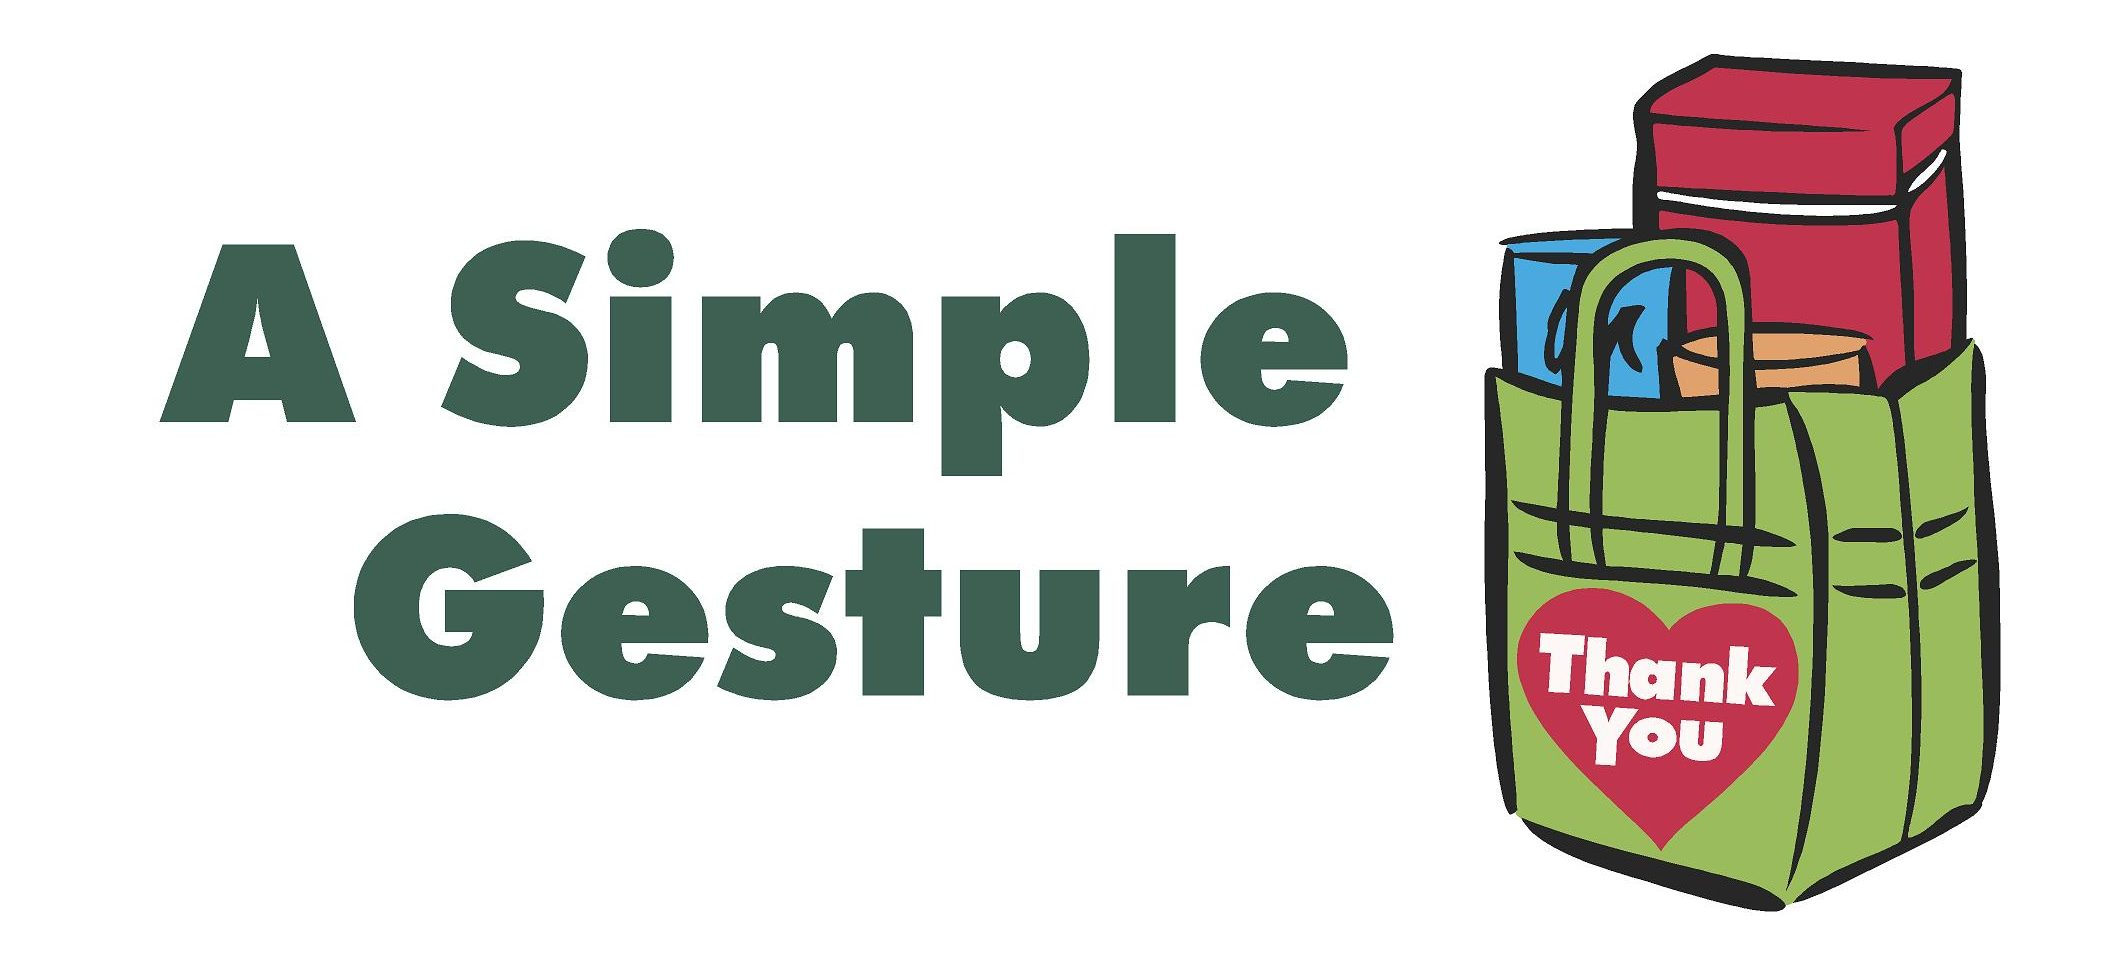 A Simple Gesture GSO nonprofit organization